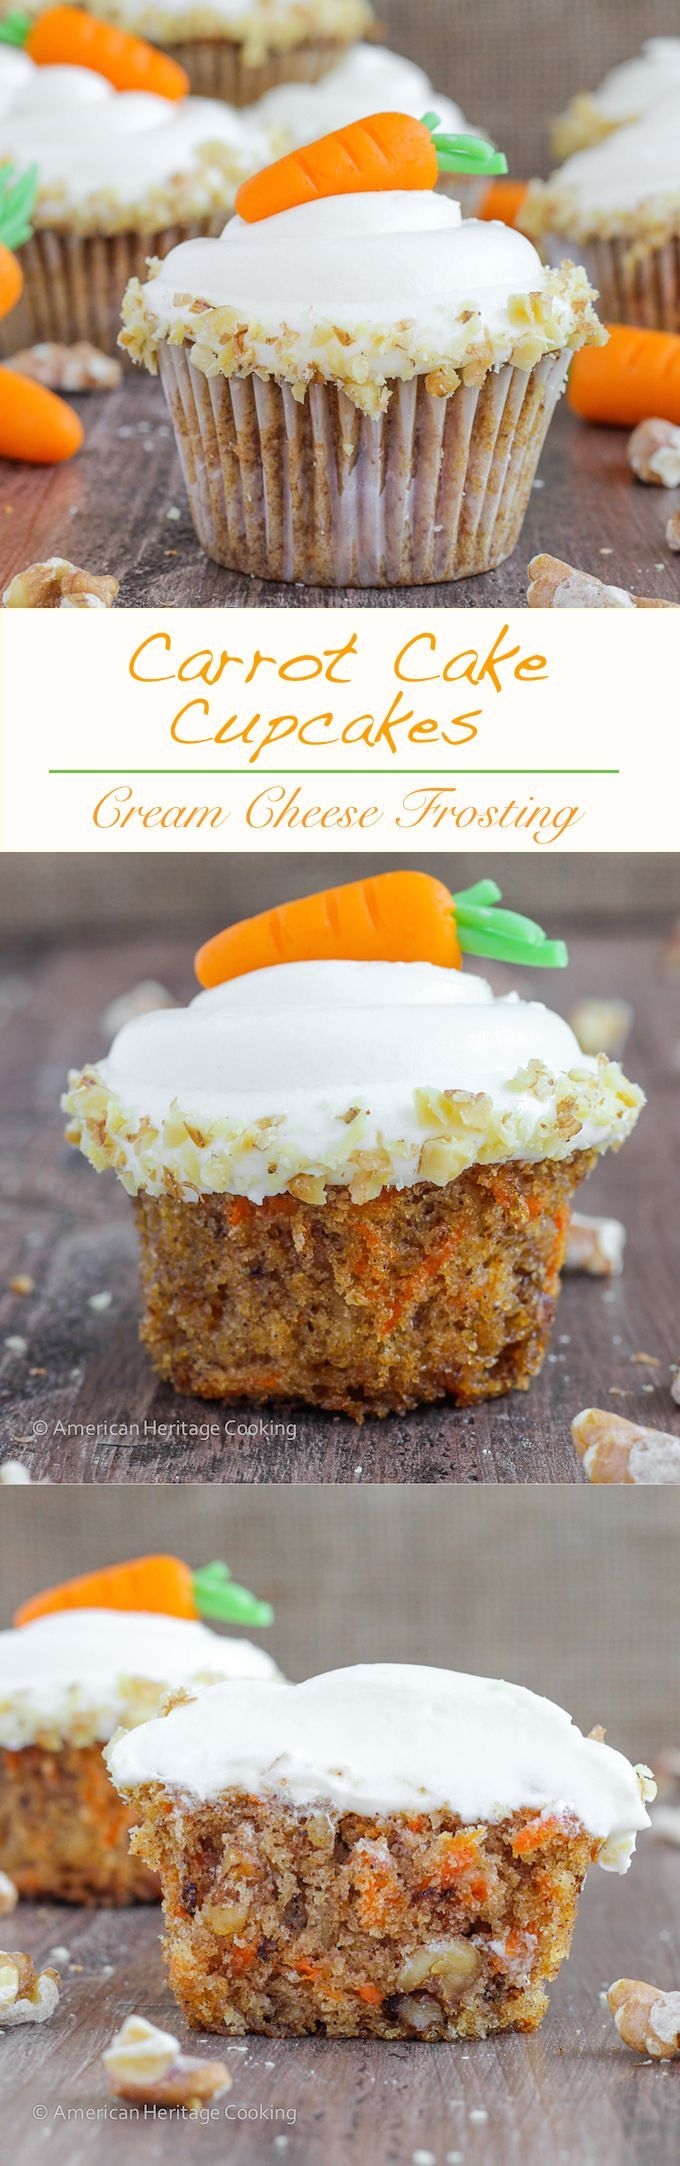 These are the moistest, most delicious Carrot Cake Cupcakes | A recipe I learned in culinary school that my husband said were the best ever! Perfect for Easter! #carootcakecupcakes #easterdessertrecipe #easterrecipe #eastercupcake #americanheritagecooking